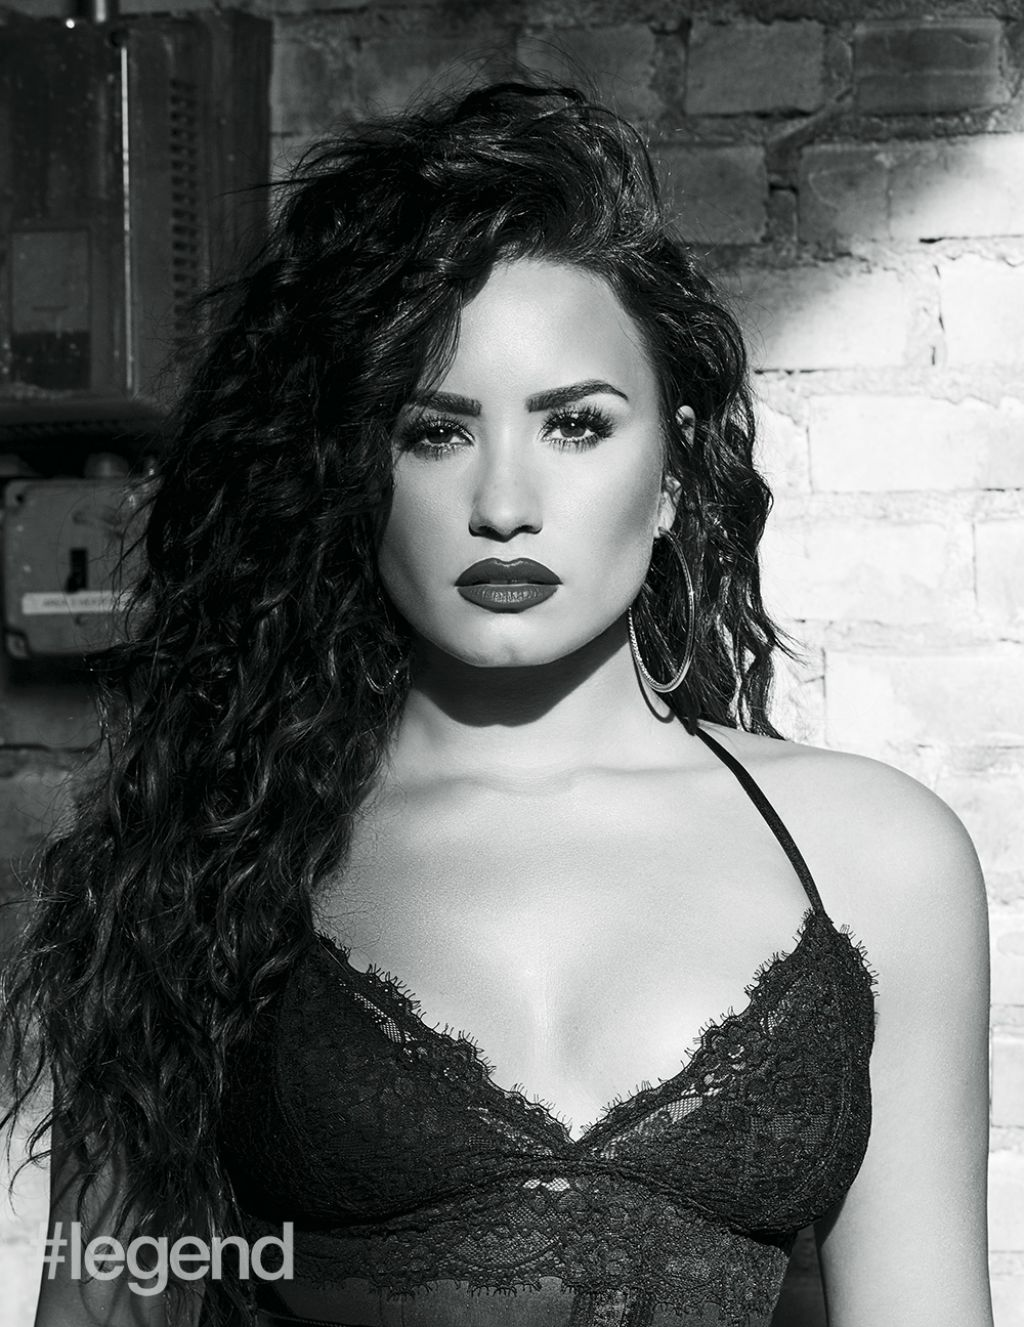 Demi Lovato - Photoshoot for #legend Magazine, November 2017